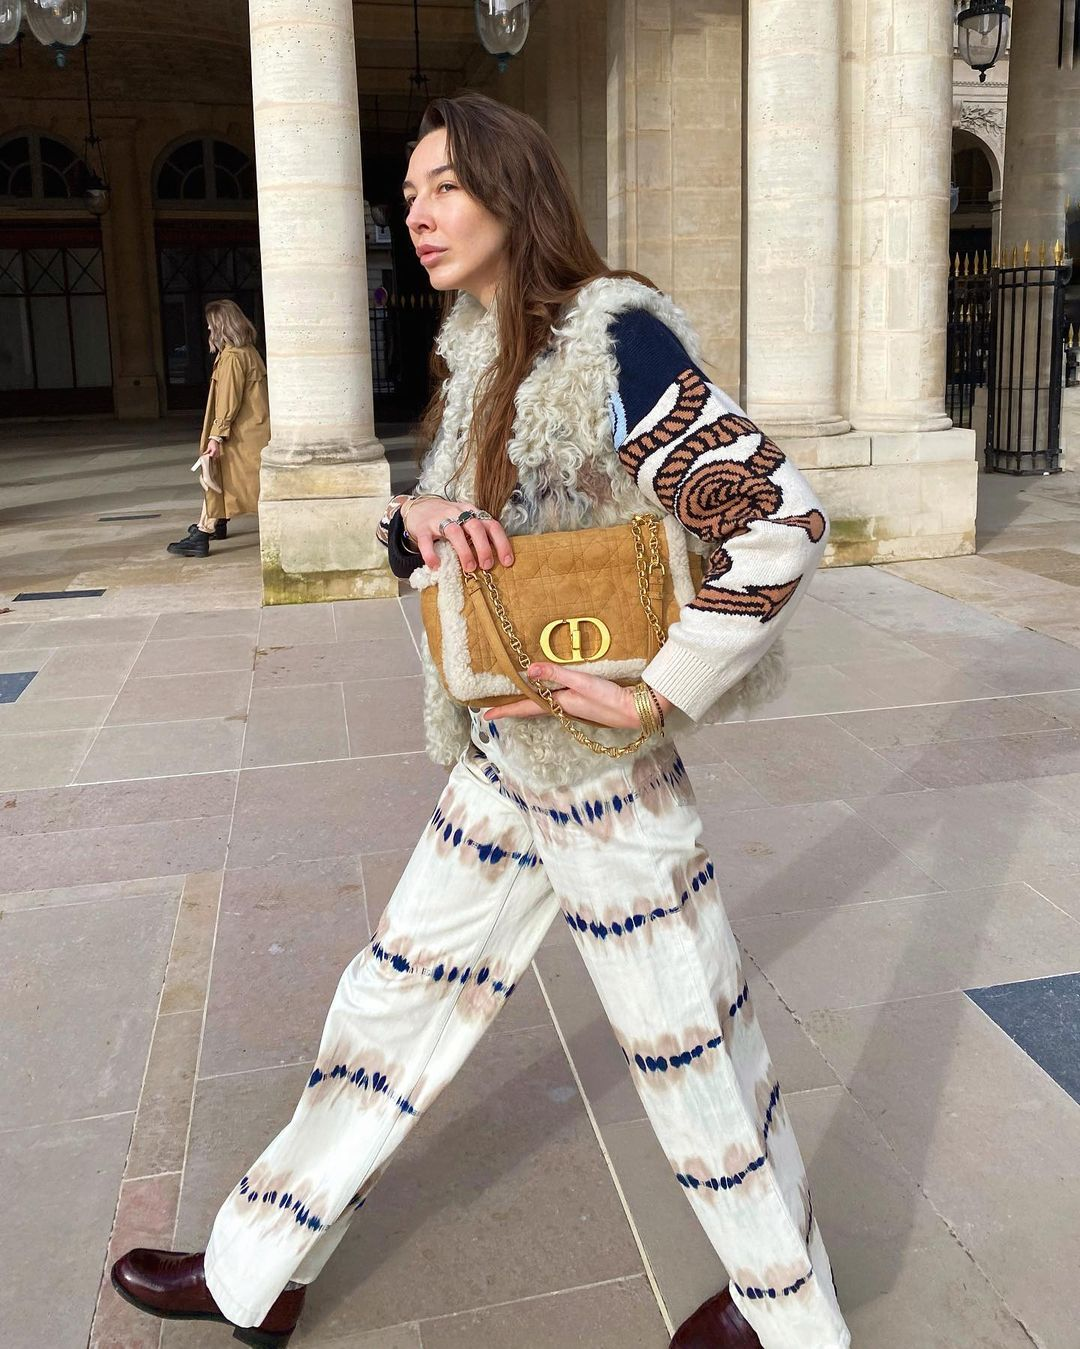 estelle-chemouny-large-dior-caro-bag-camel-sheepskin-wool-instagram